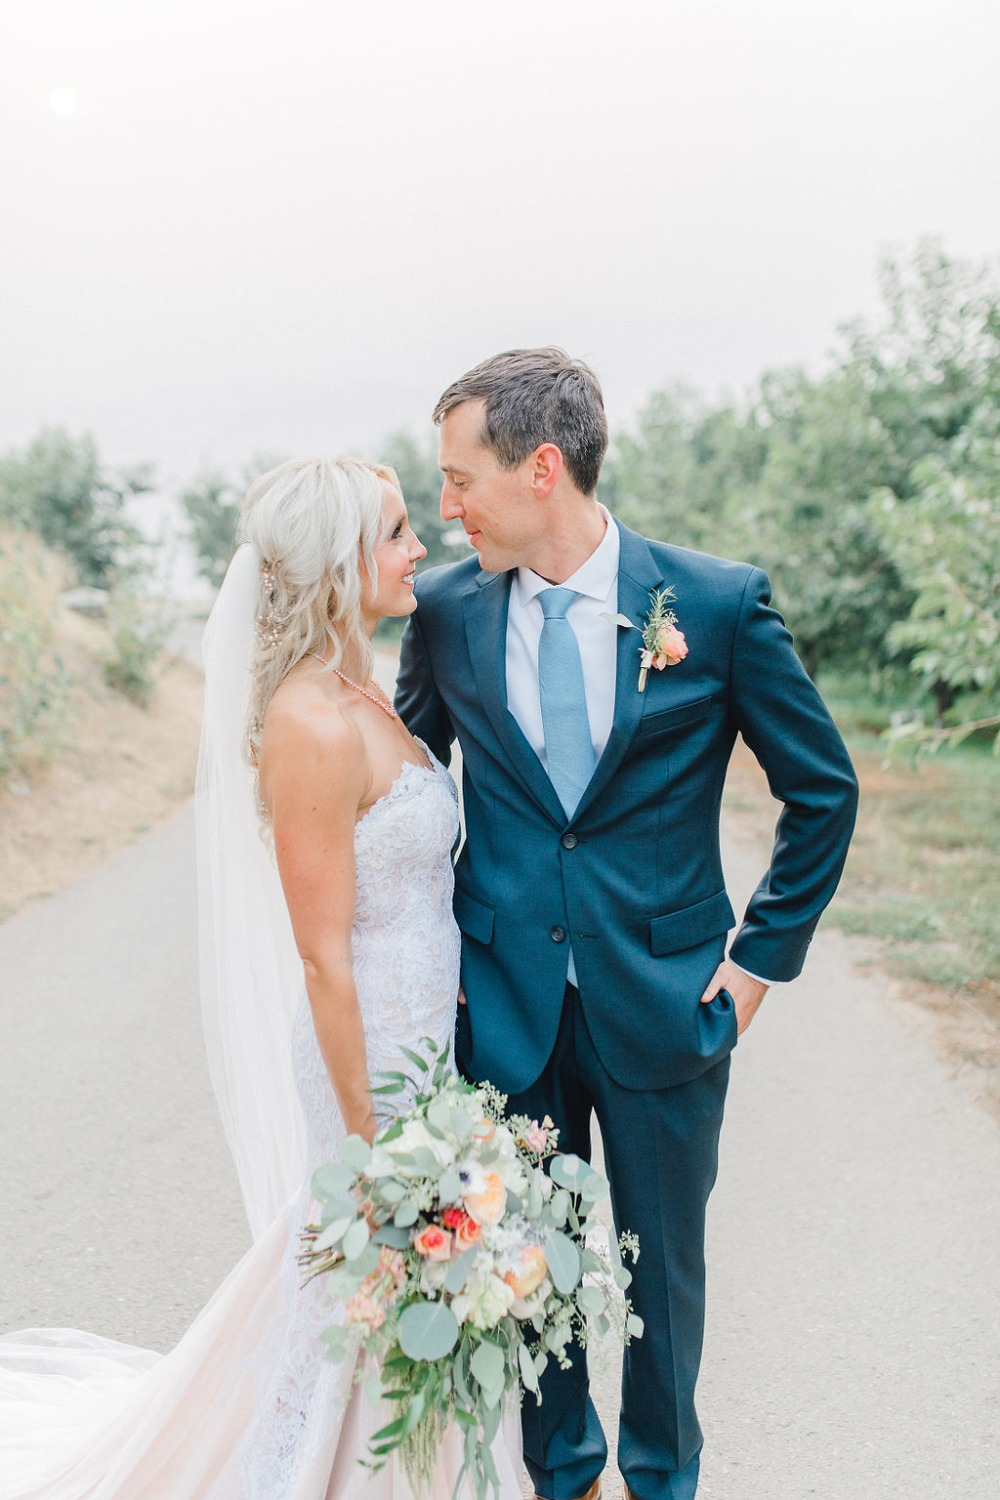 Chic garden wedding in Washington